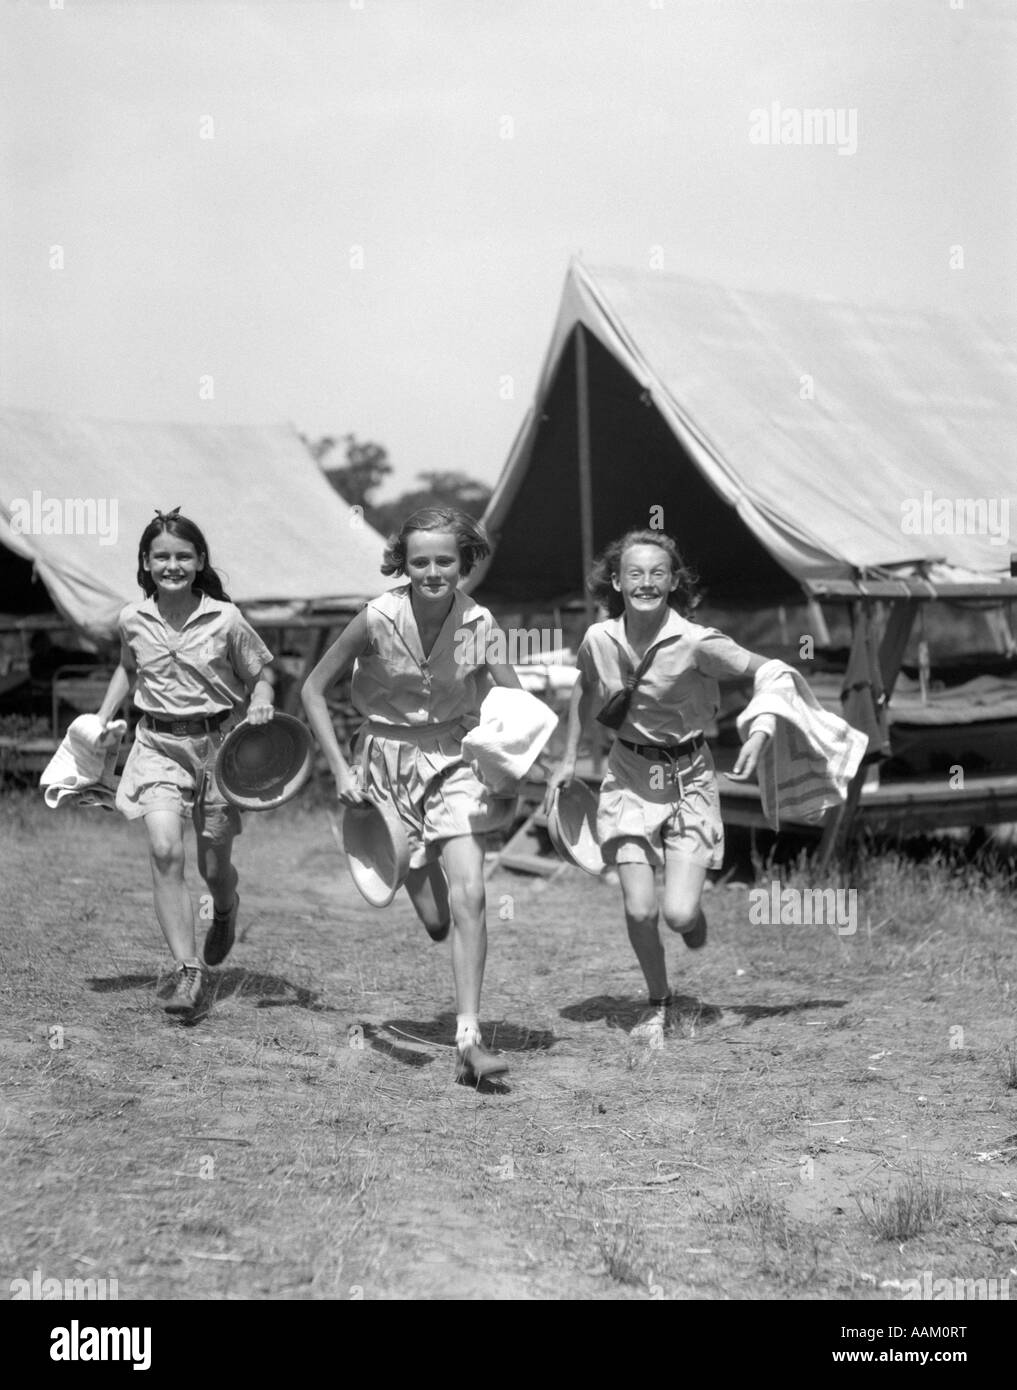 1930s THREE TEEN GIRLS WEARING CAMP SHORTS & SHIRTS RUNNING FROM TENTS WHILE HOLDING TOWELS & WASH BASINS - Stock Image